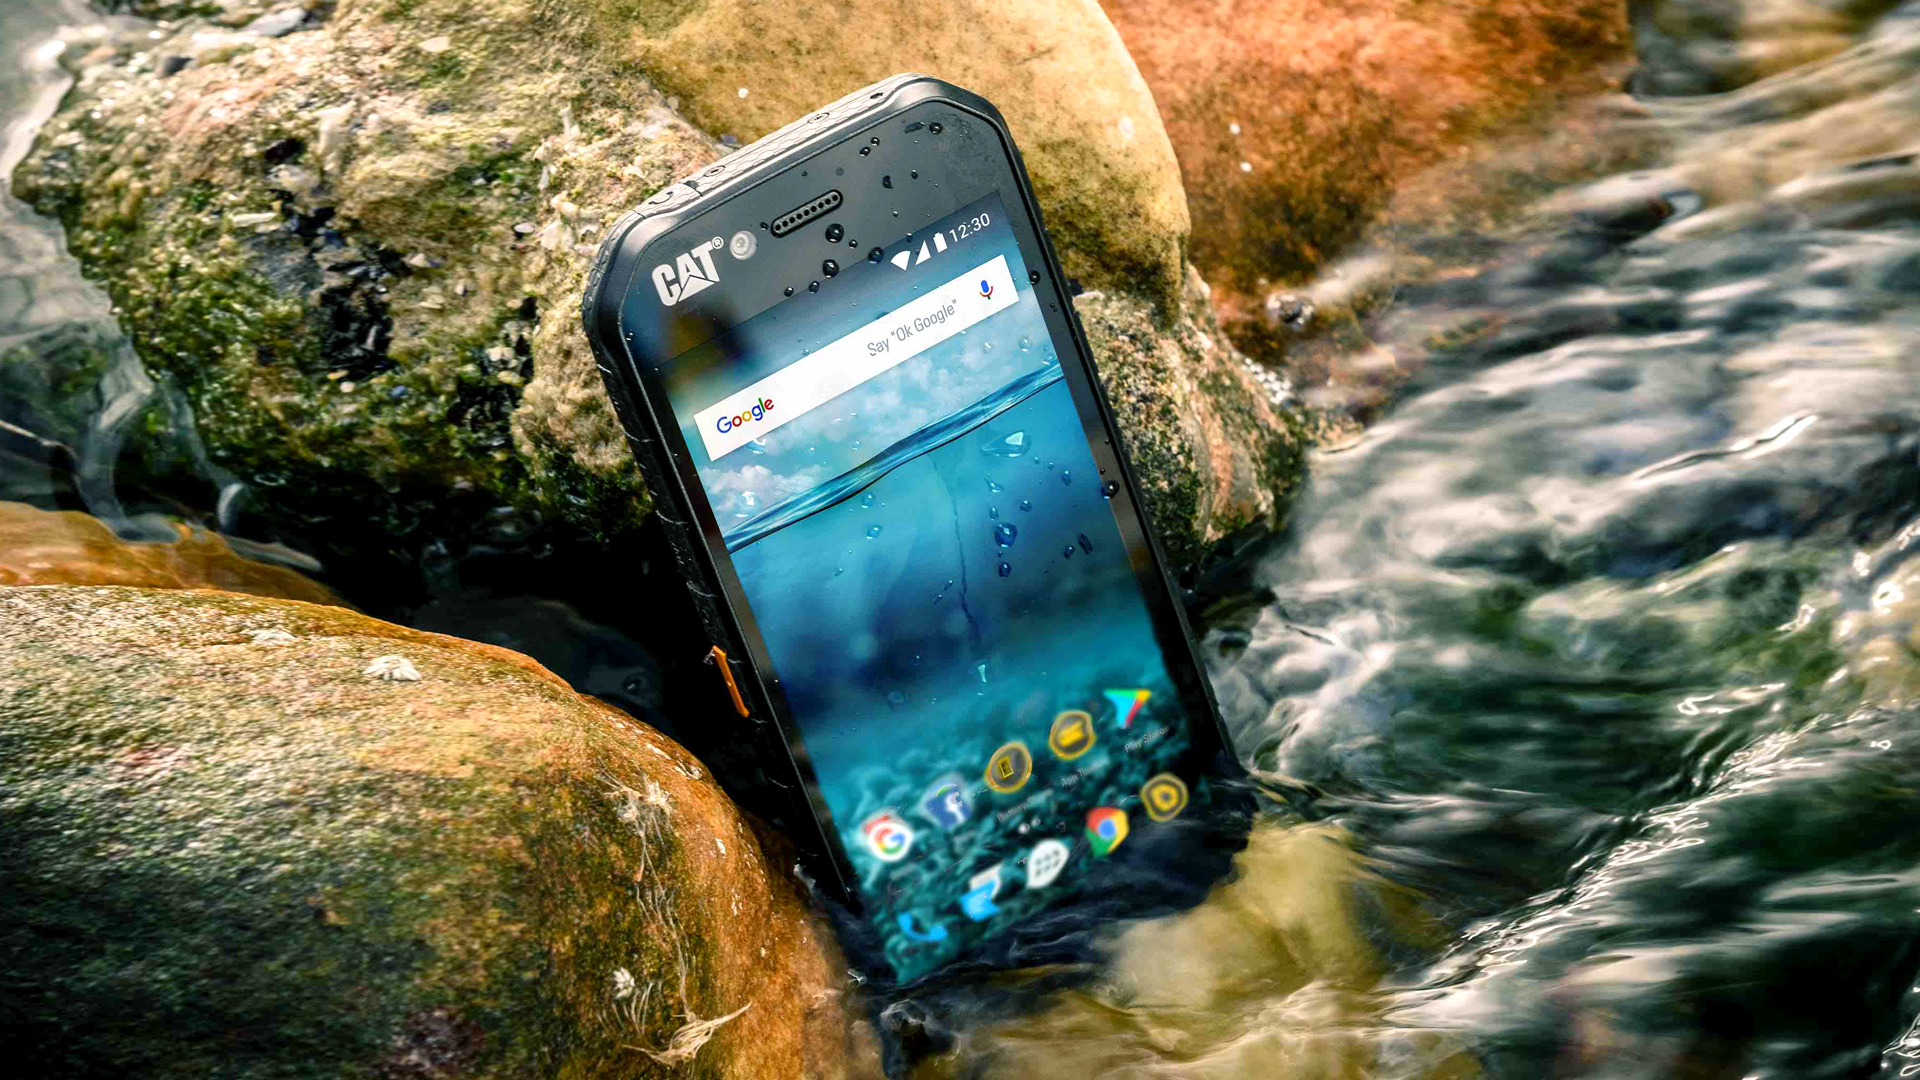 Caterpillar S41 Rugged Smartphone